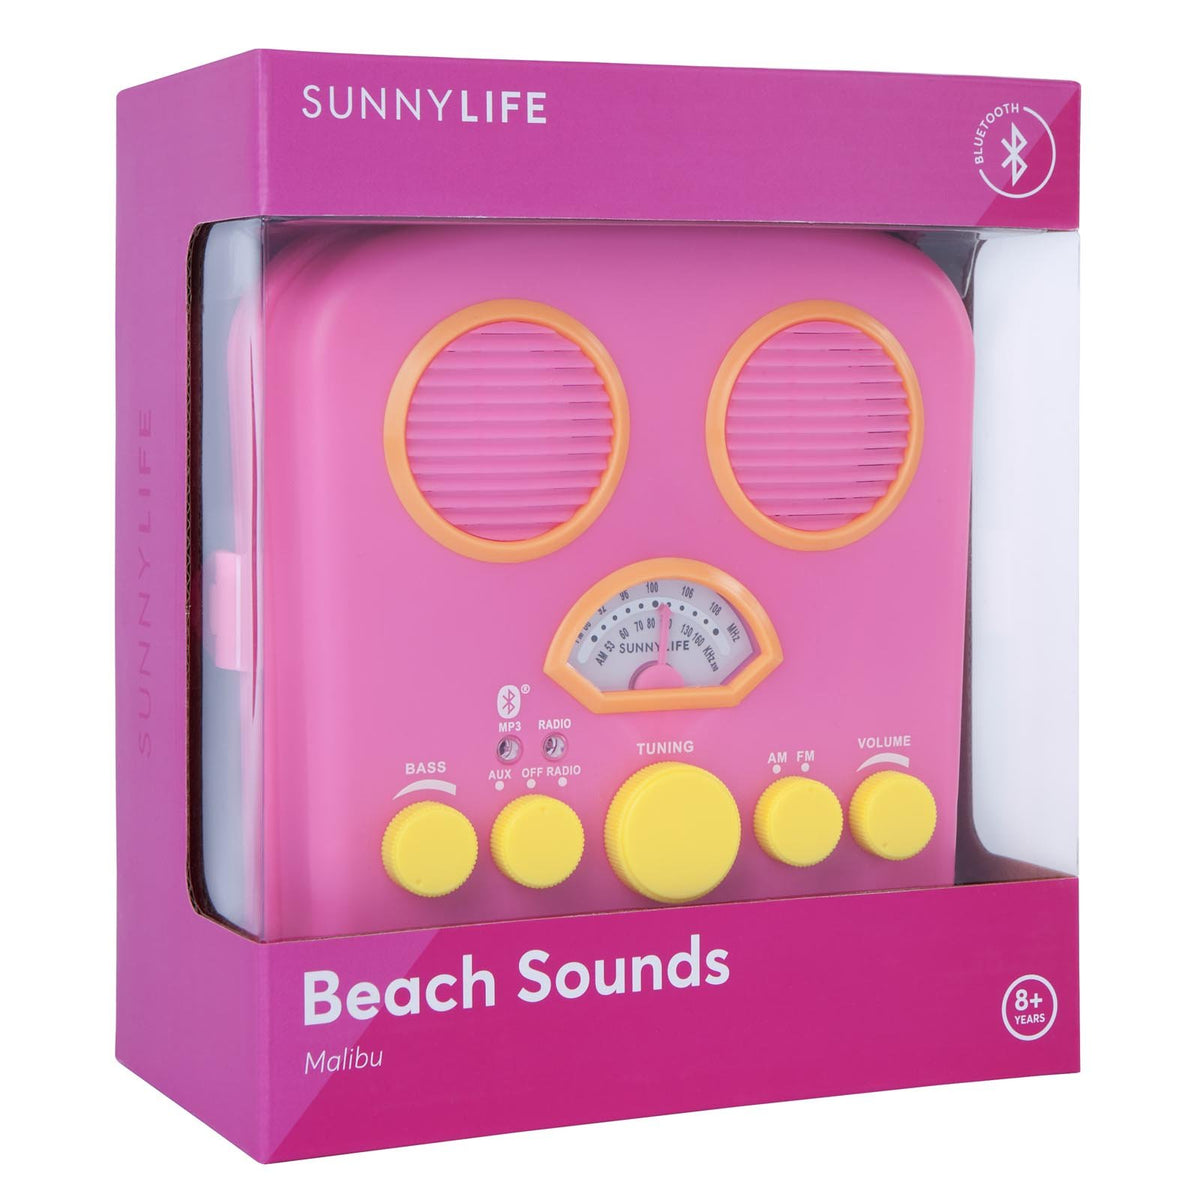 Sunnylife | Beach Sounds | Malibu